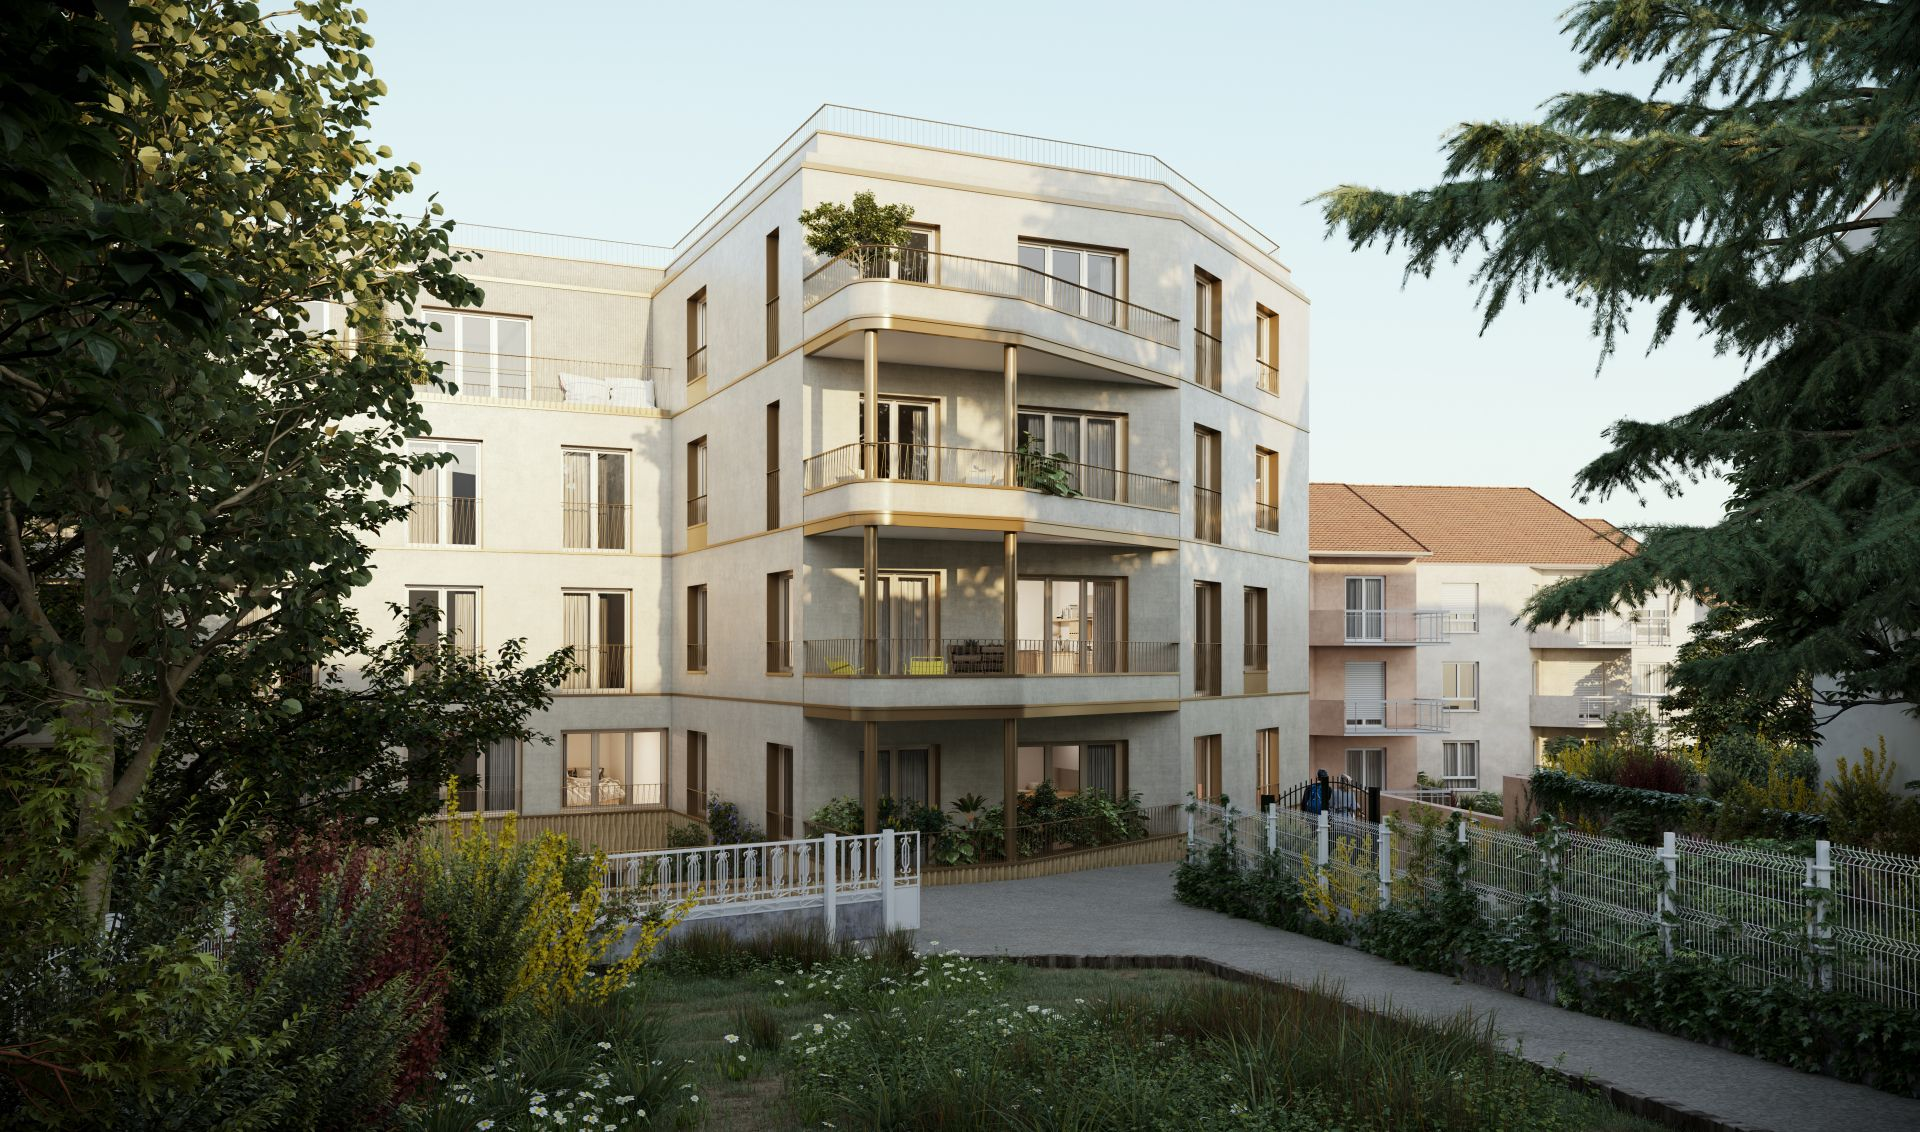 Supervue la architectures lgt logements a chaville Medium